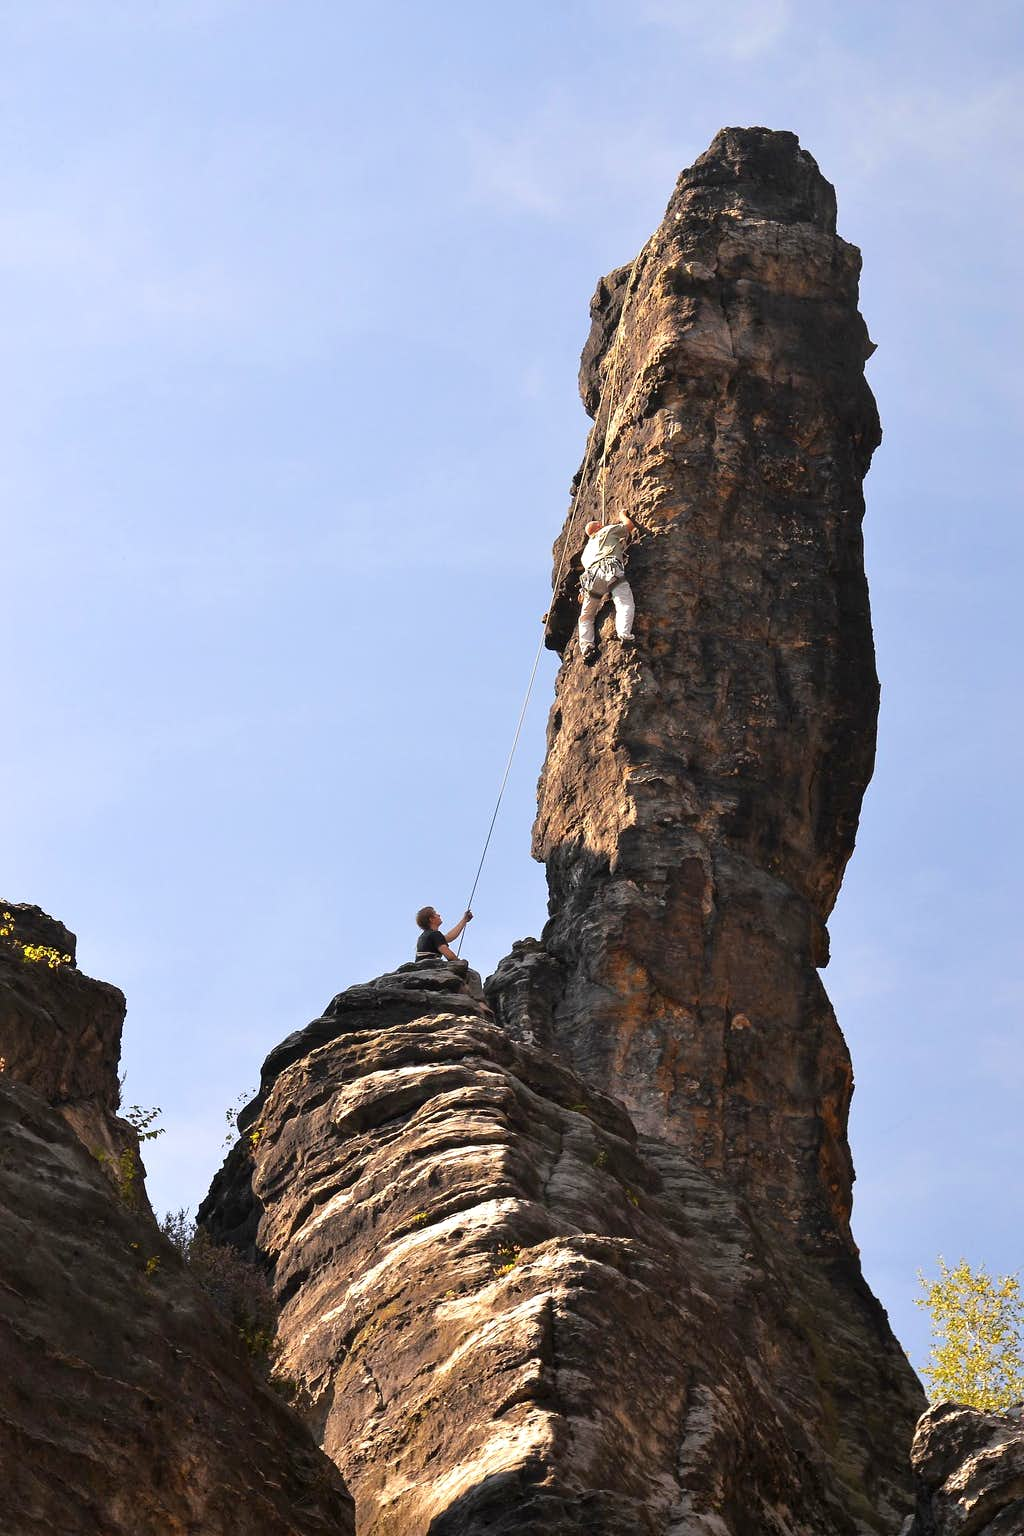 Climbers in the Bielatal valley